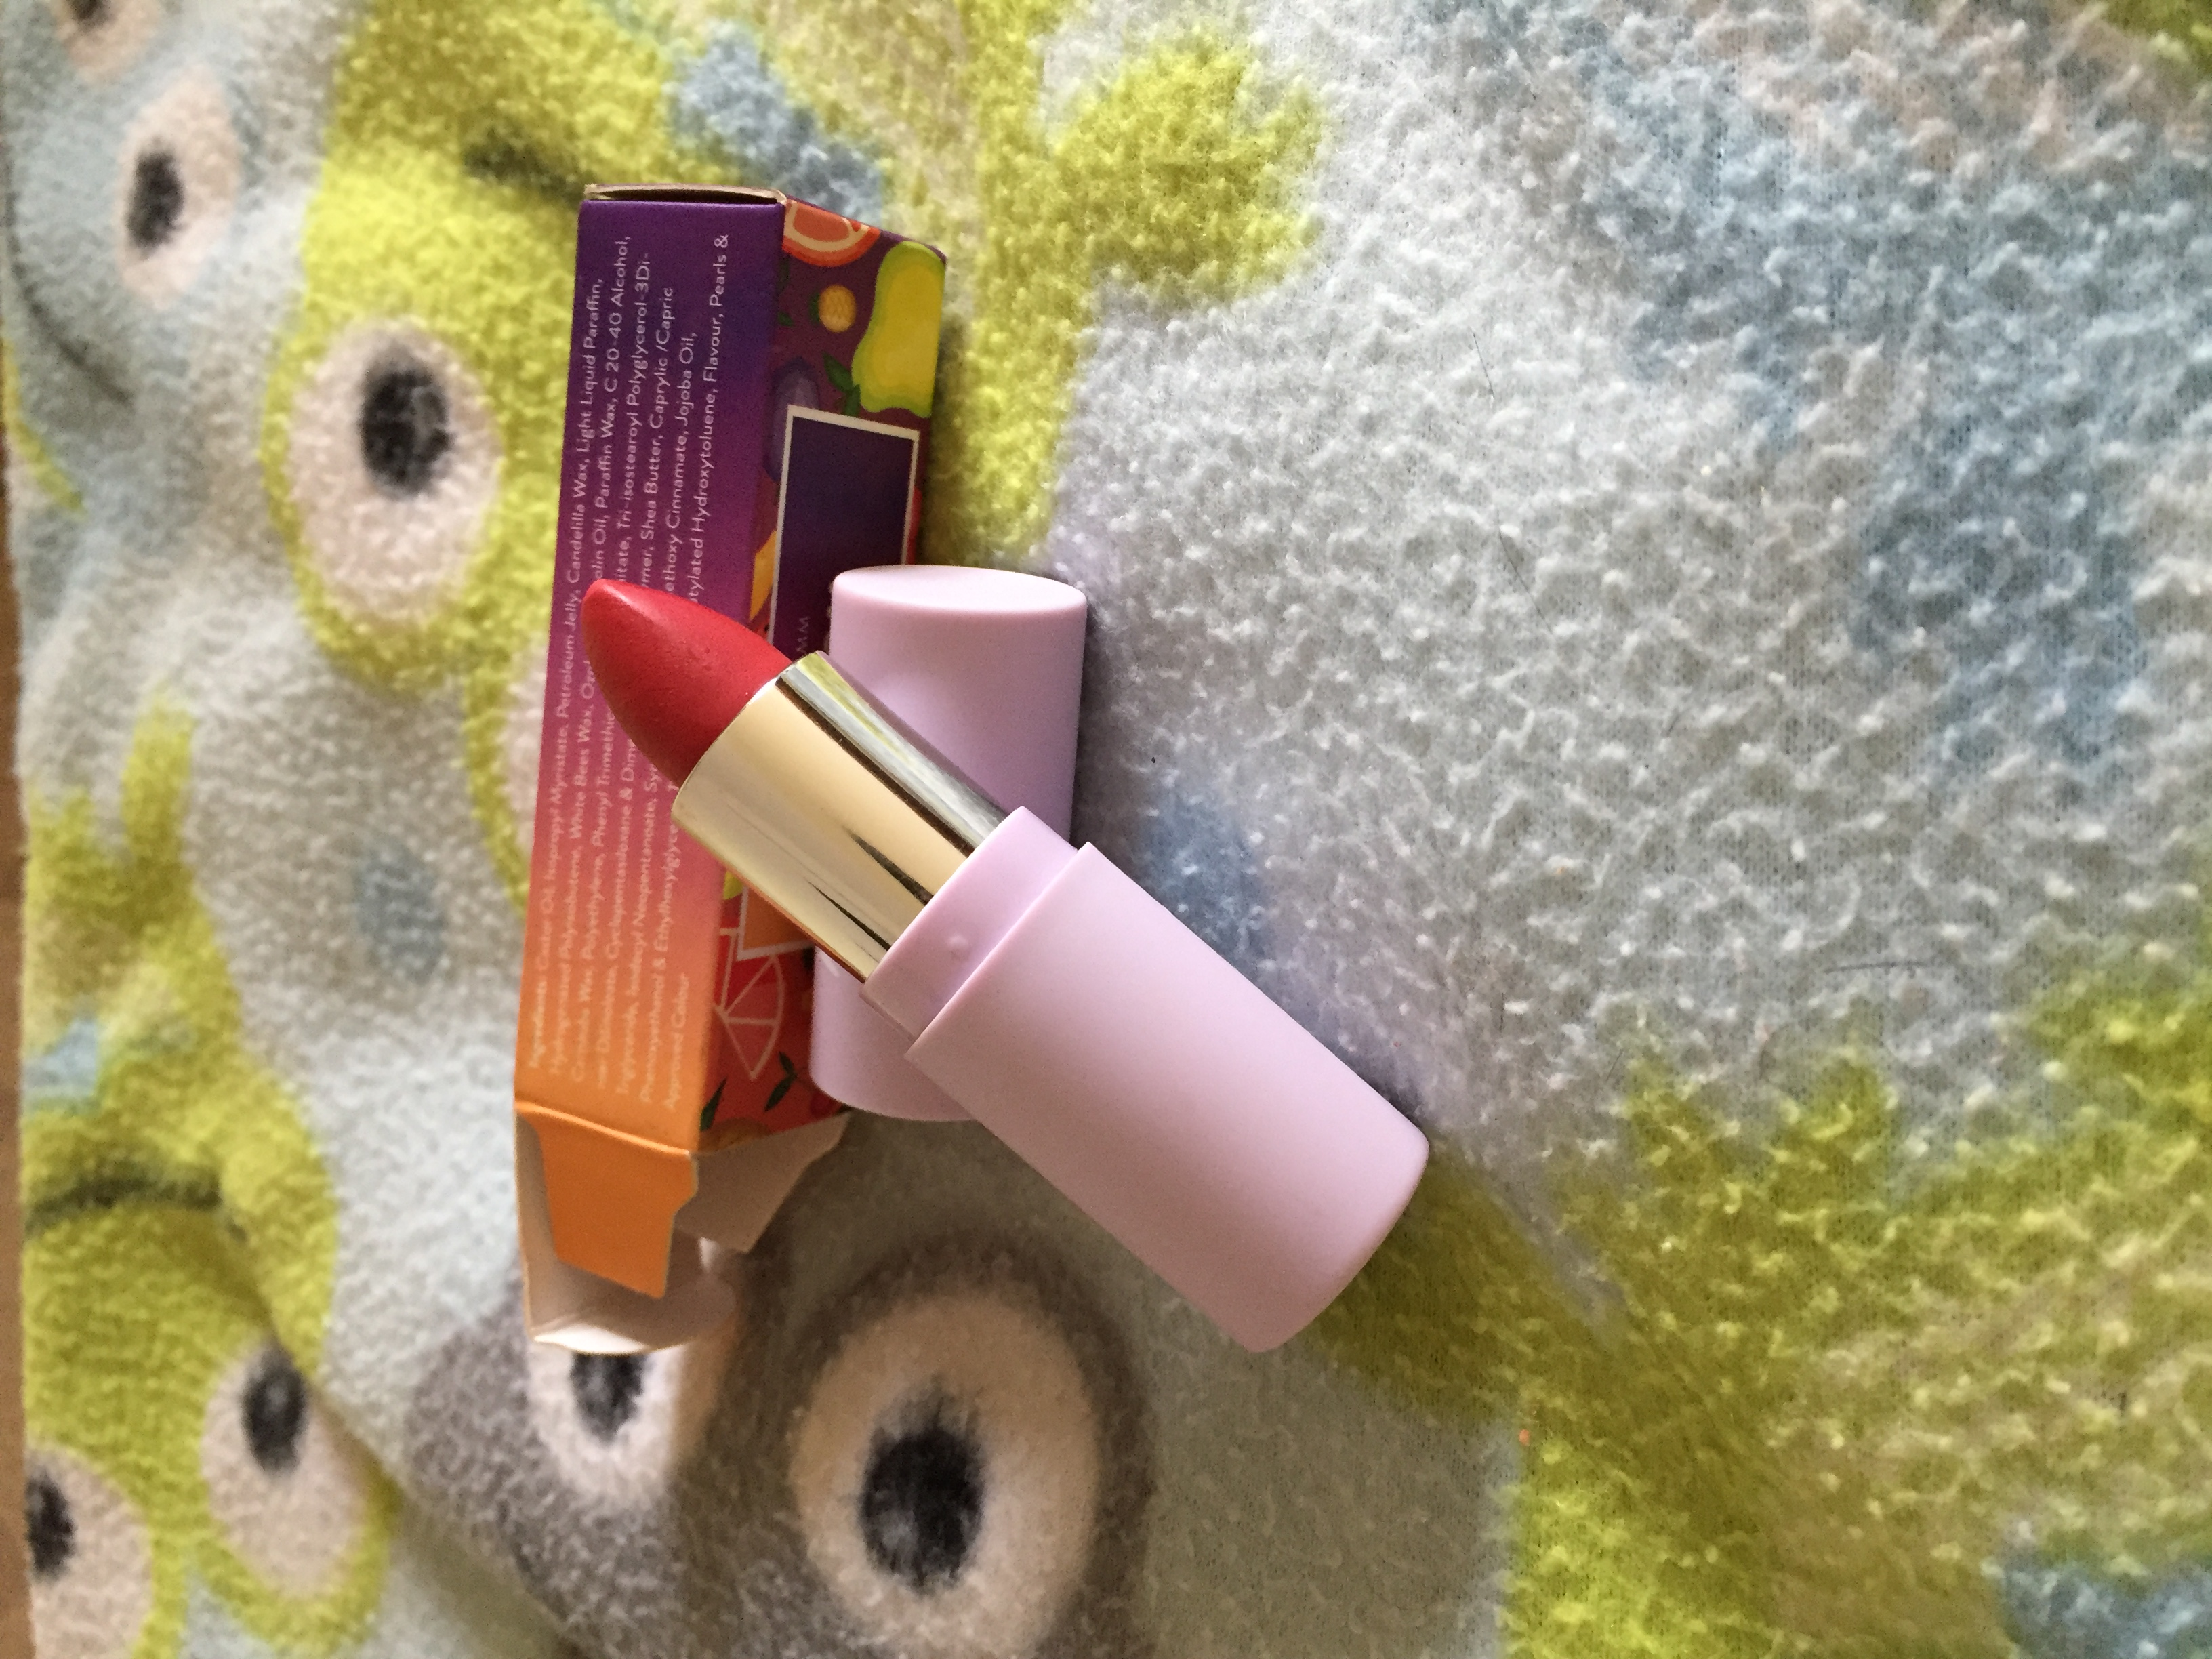 MyGlamm K.PLAY FLAVOURED LIPSTICK – CRANBERRY TWIST-Natural flavoured lipstick!!!-By santhiya_rajendrababu